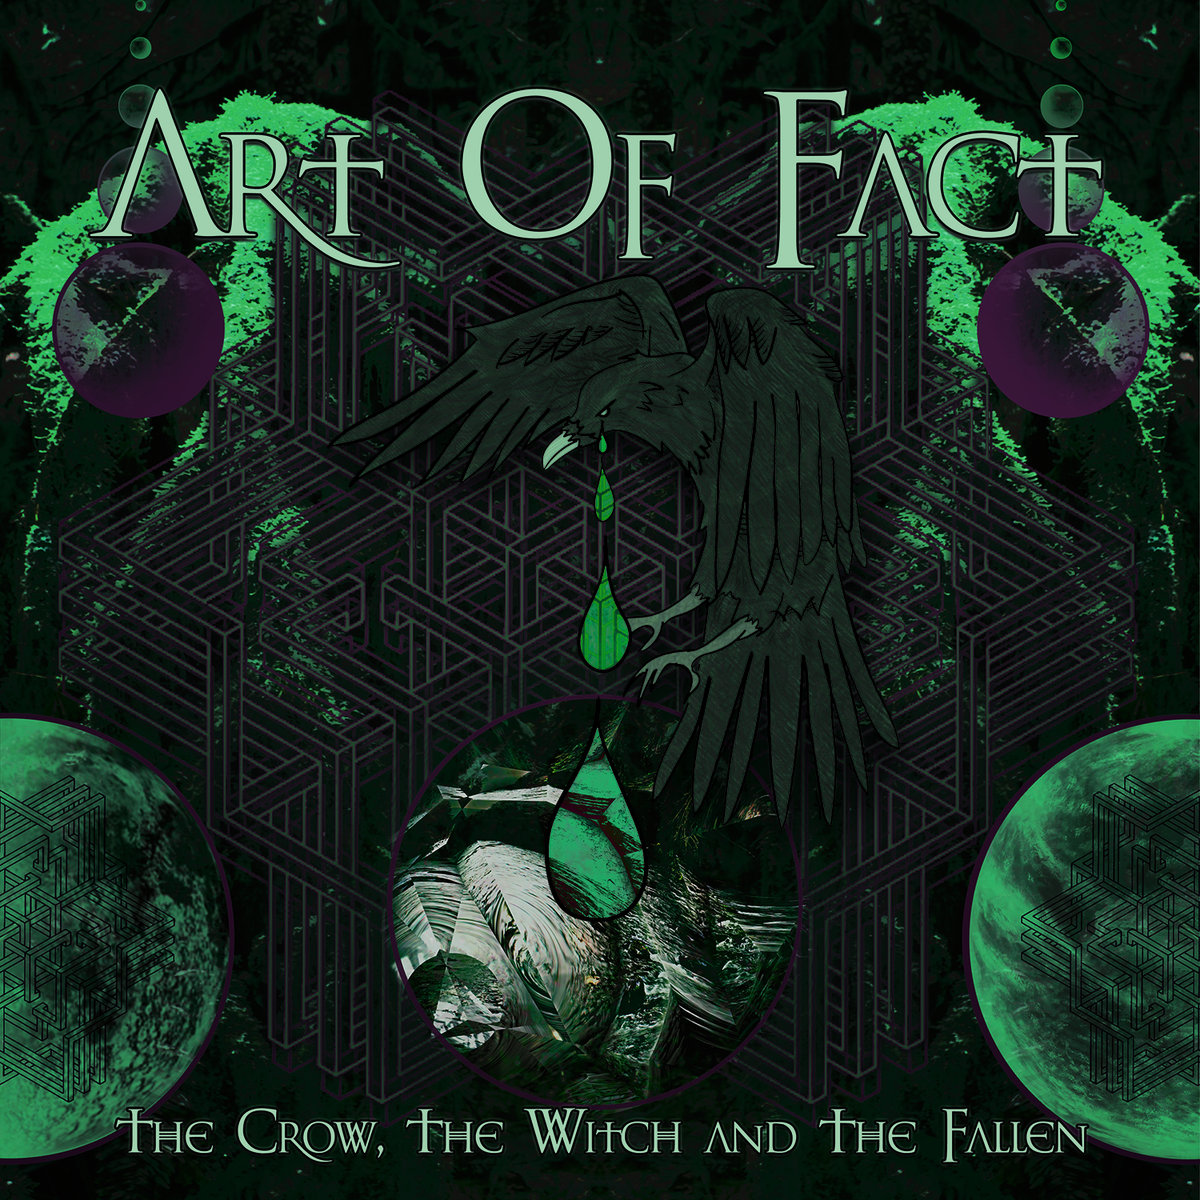 Art Of Fact - The Promise @ 'The Crow, The Witch and The Fallen' album (bass, electronic)